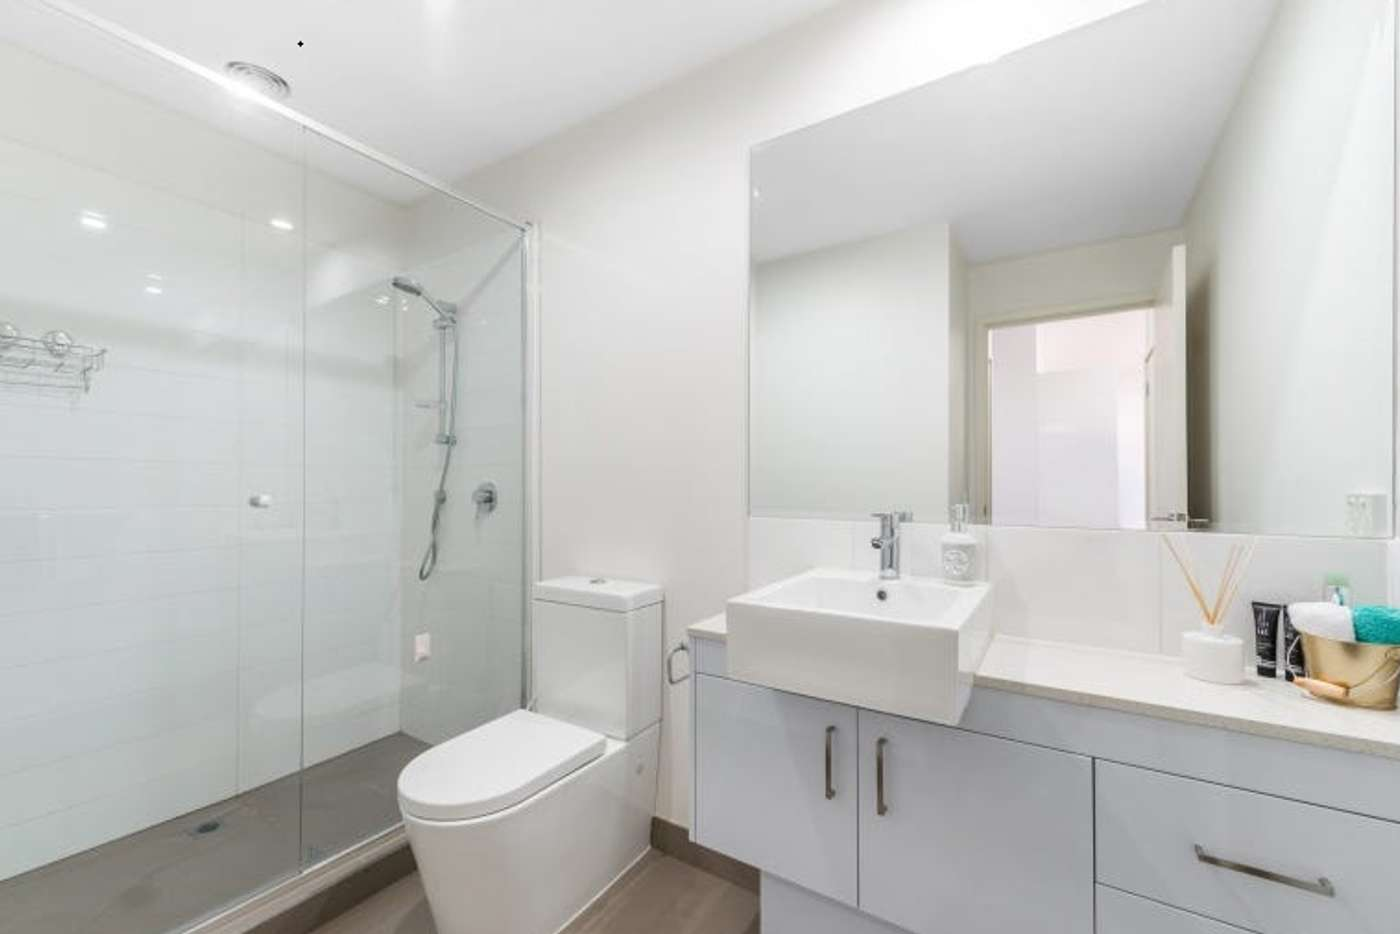 Sixth view of Homely apartment listing, 108/339-345 Mitcham Road, Mitcham VIC 3132